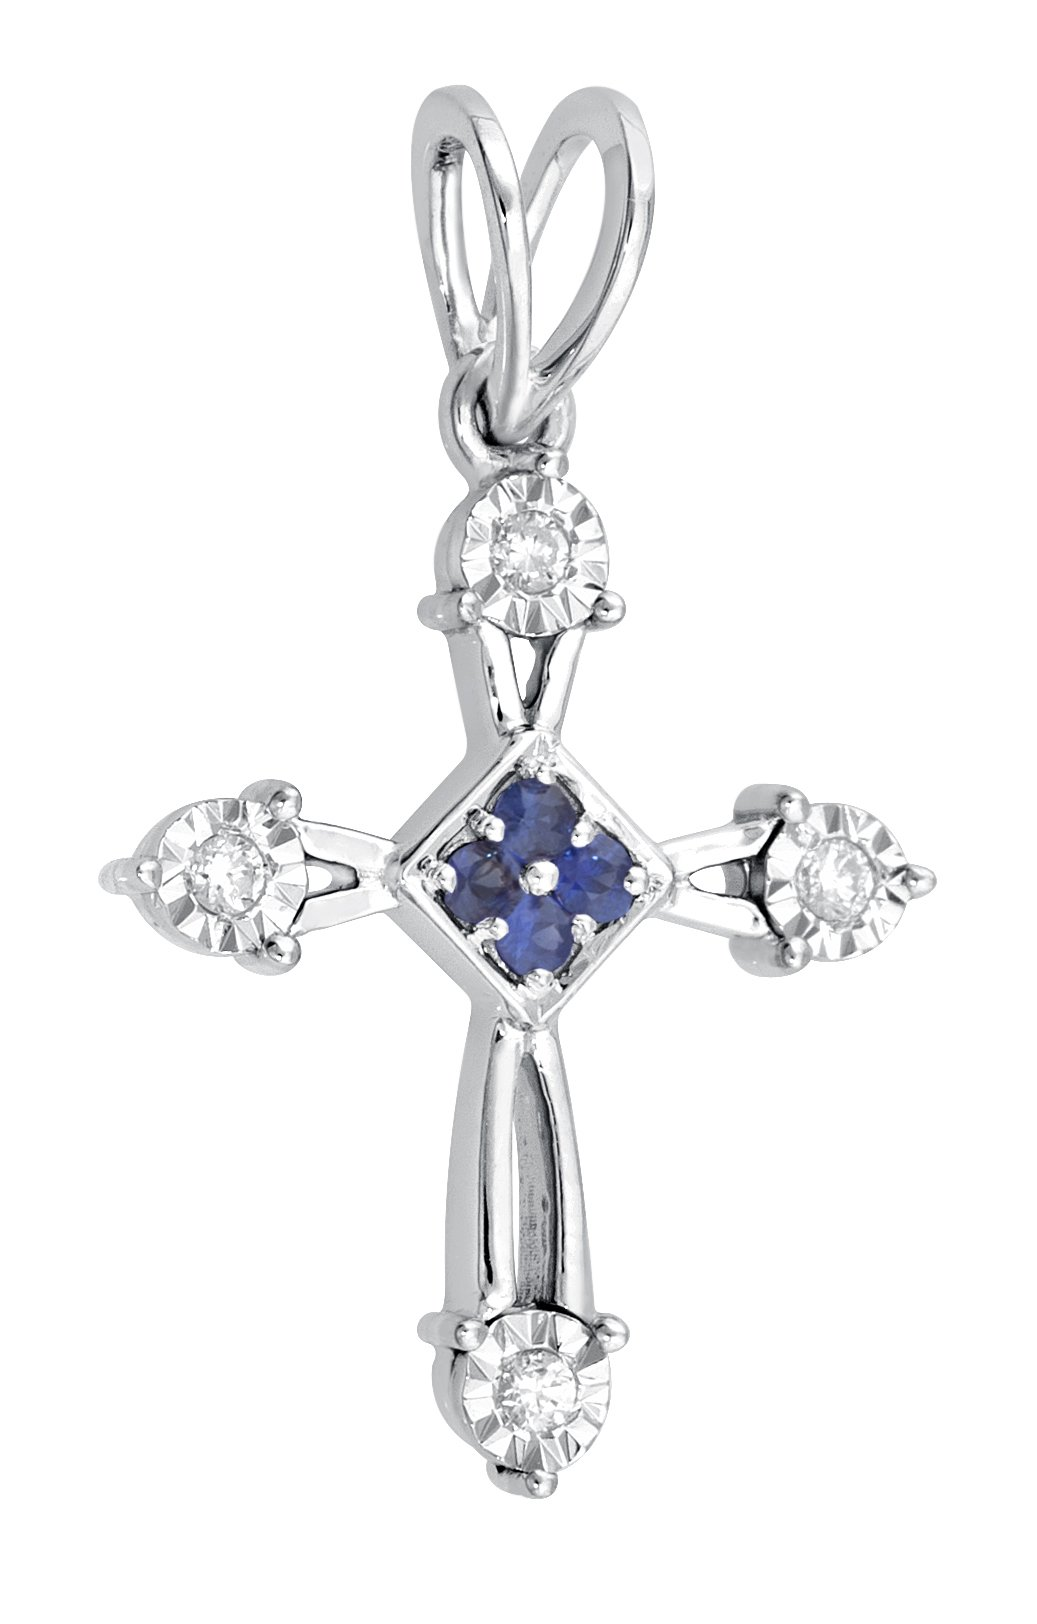 Christmas Gift, Necklace, Almighty Cross, Jewel Ivy 14K Gold Cross Pendant With 0.07 Carat Diamond and 0.06 Carat Sapphire and 1.6 Gram Chain